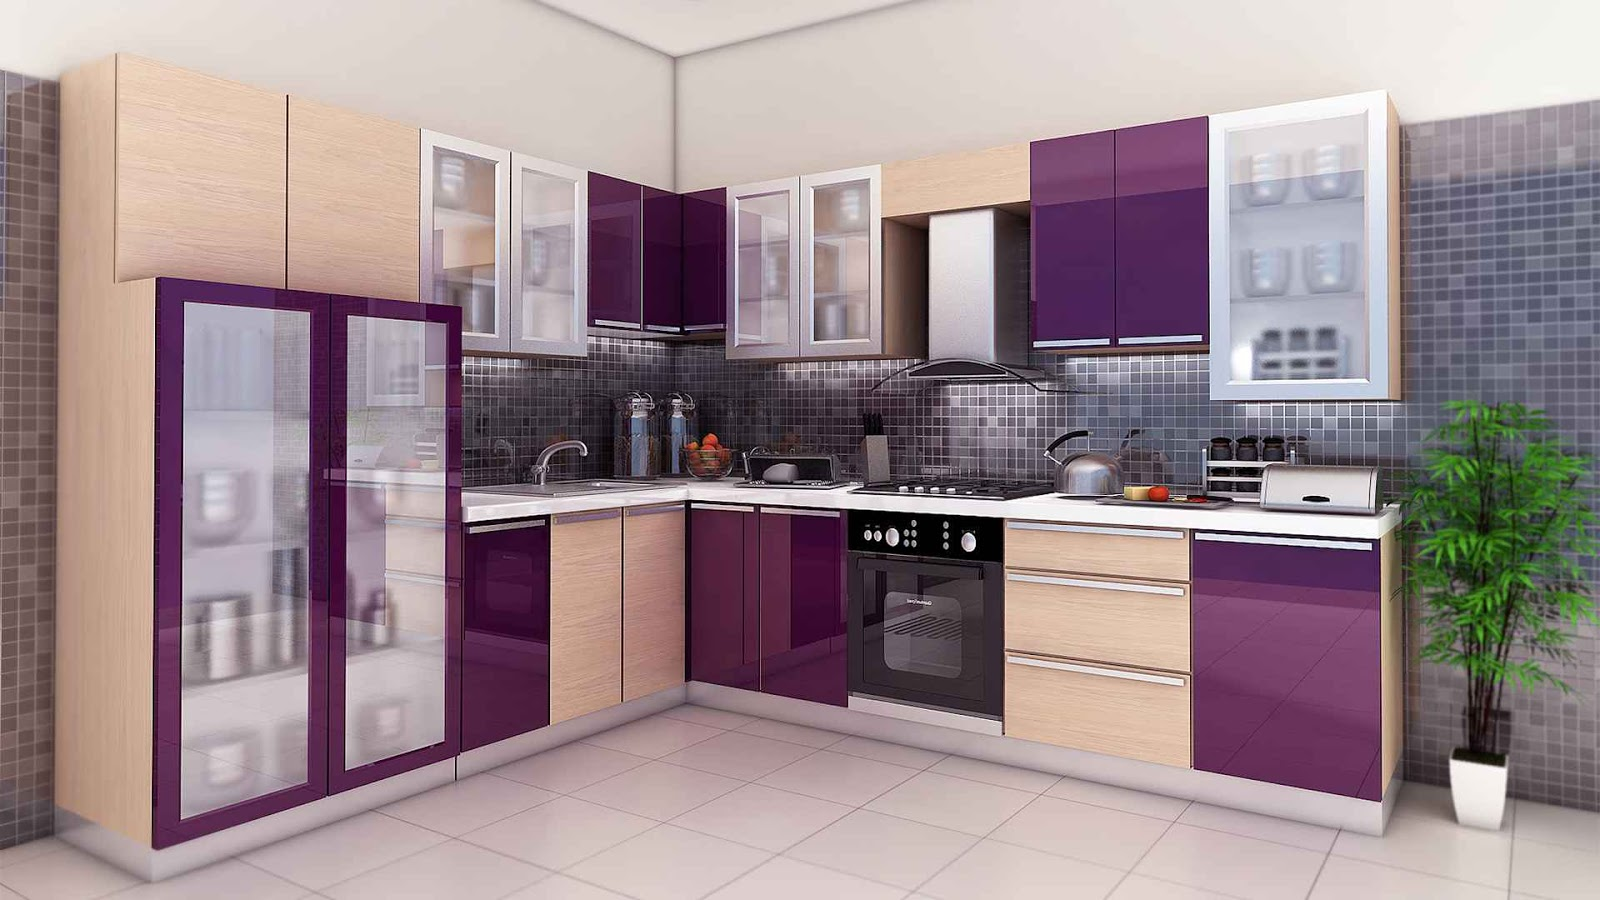 Pu Paint Modular Kitchen At Lowest Price Ever!